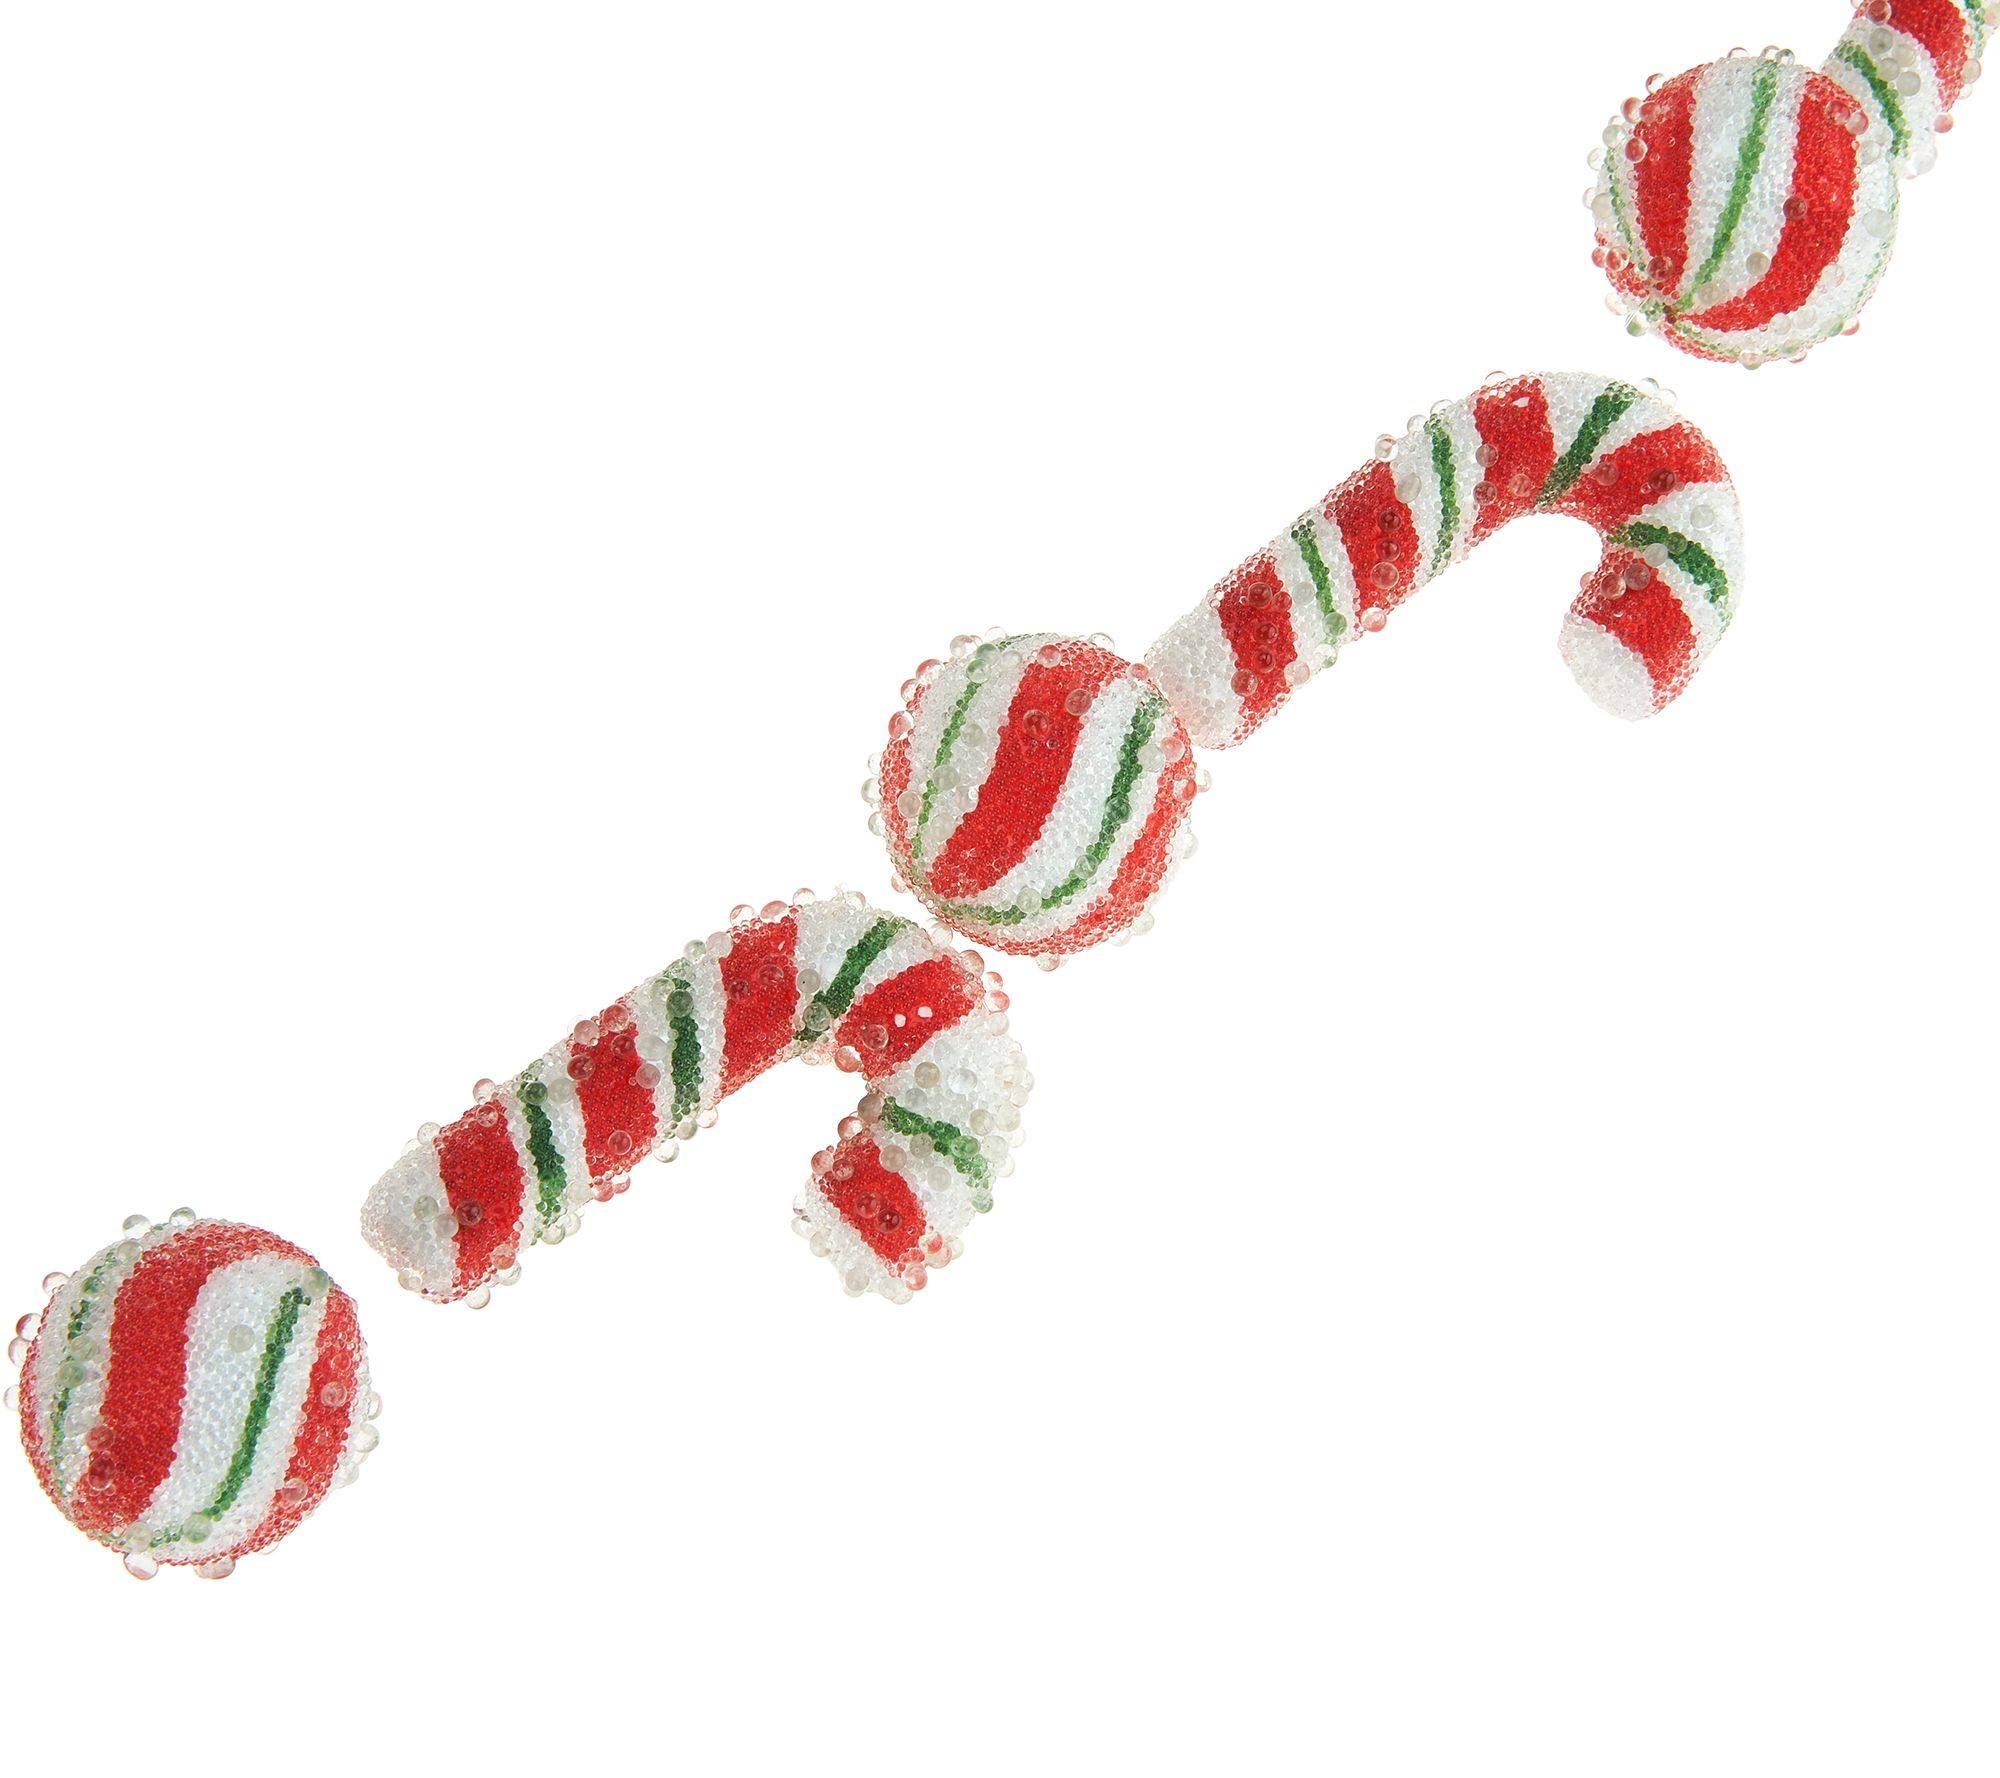 6 u0027 beaded candy cane and peppermint garland by valerie page 1